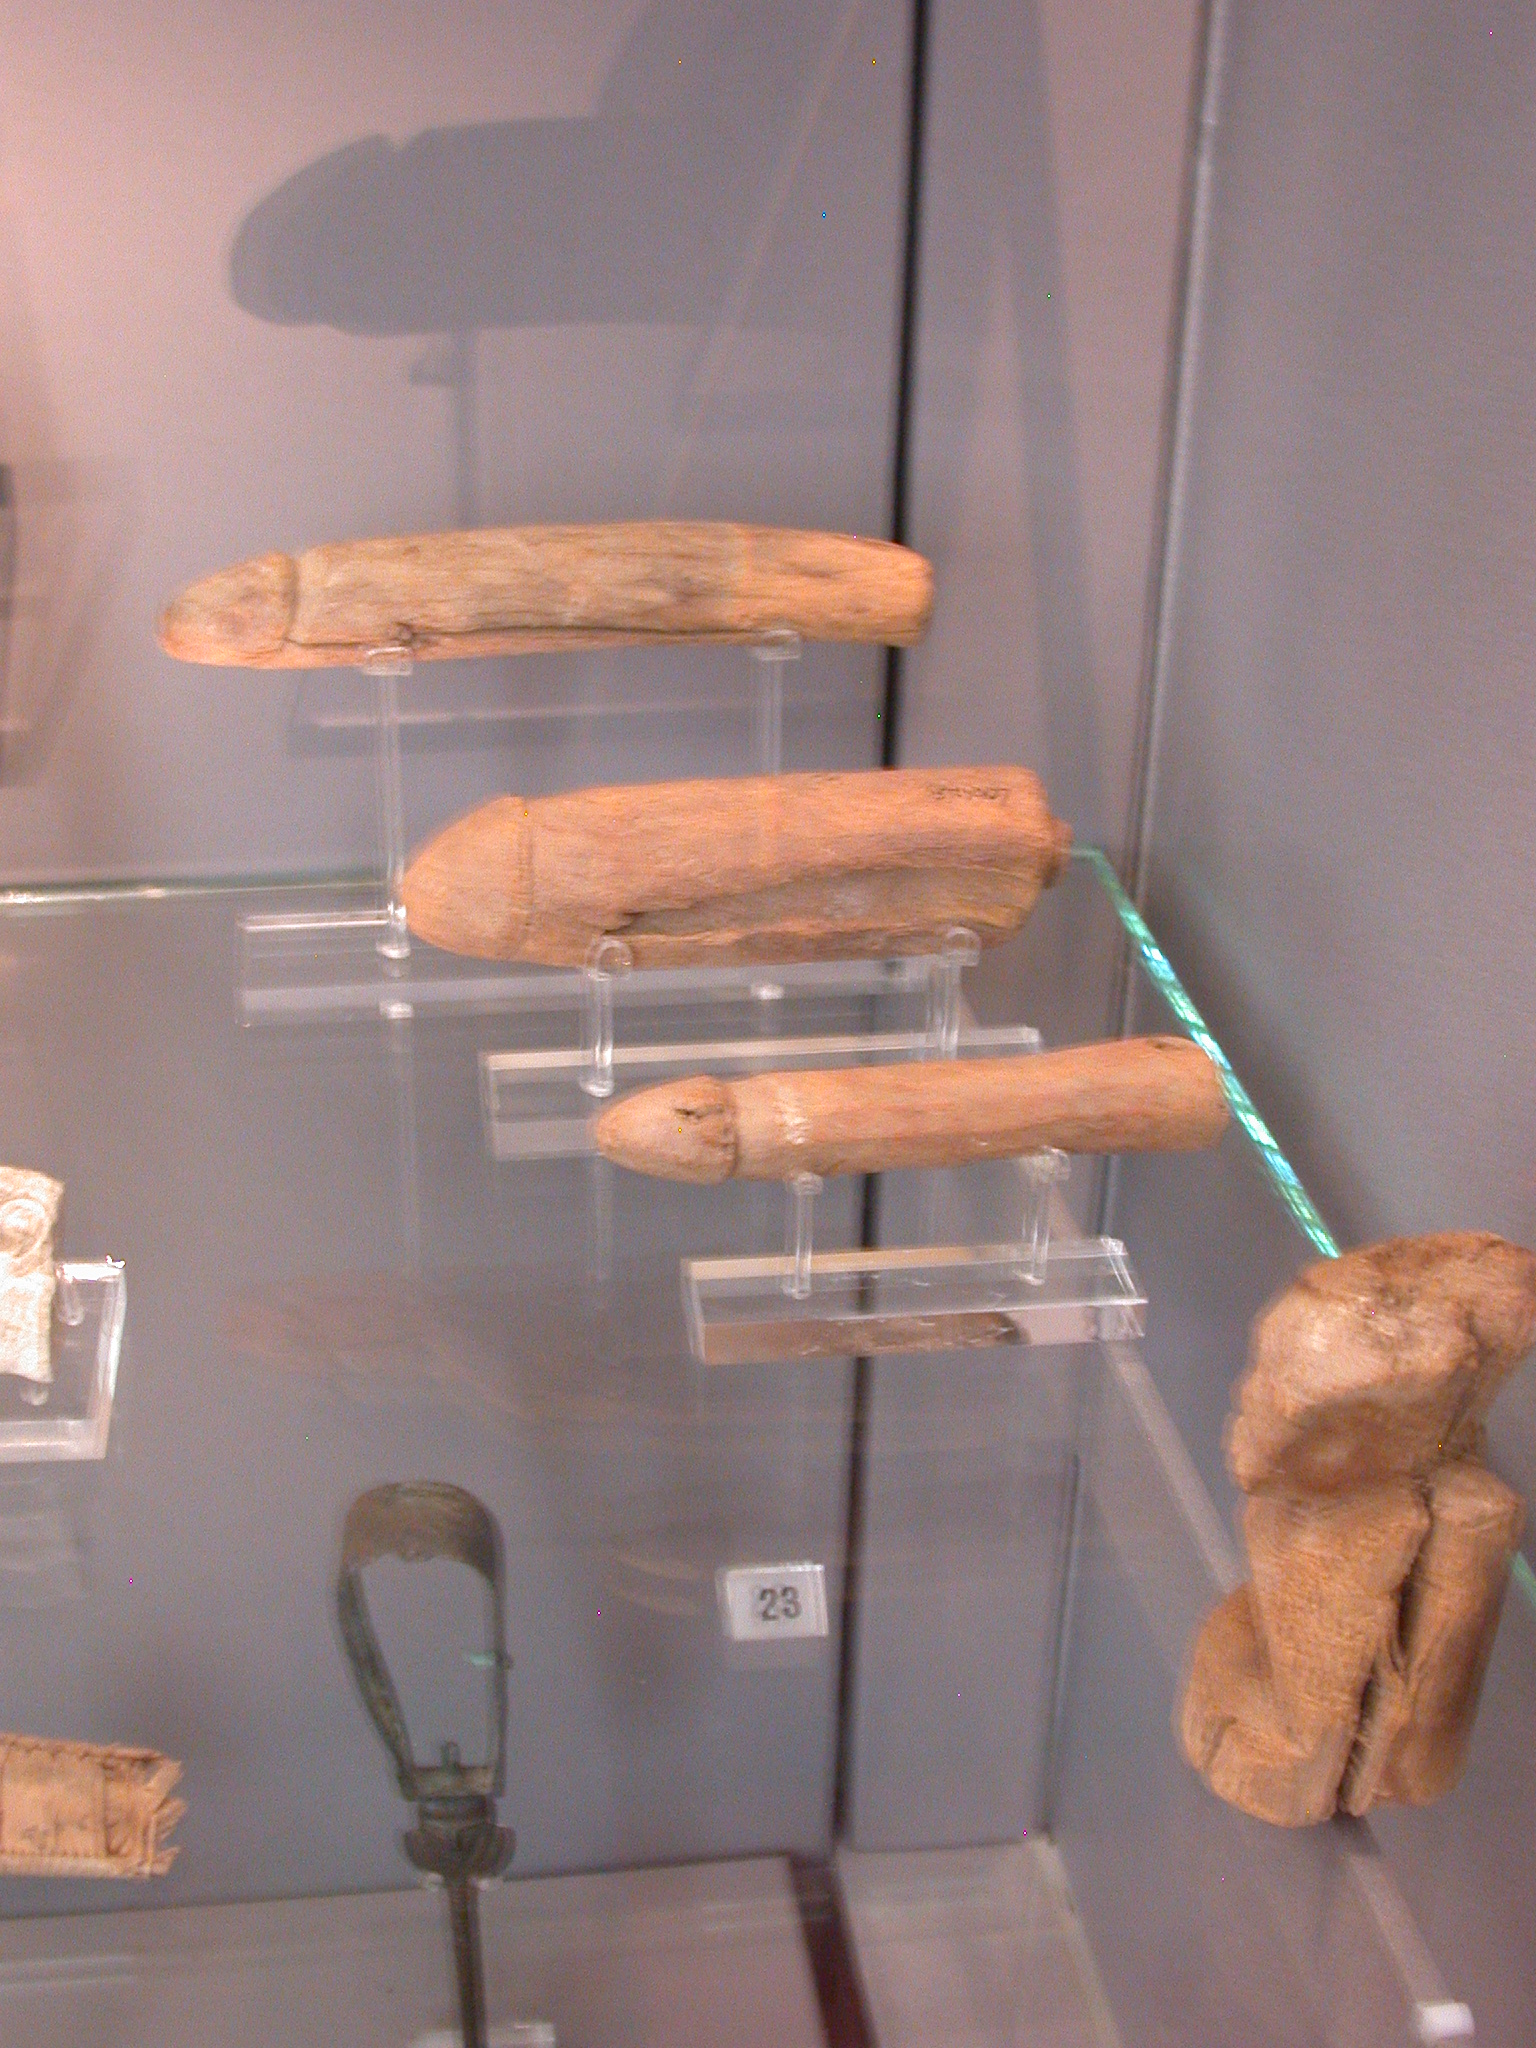 Phallic Fertility Figures, Wood, New Kingdom, 1550-1070 BCE, Montuhotep Temple, Deir el Bahri, Egypt, in Fitzwilliam Museum, Cambridge, England